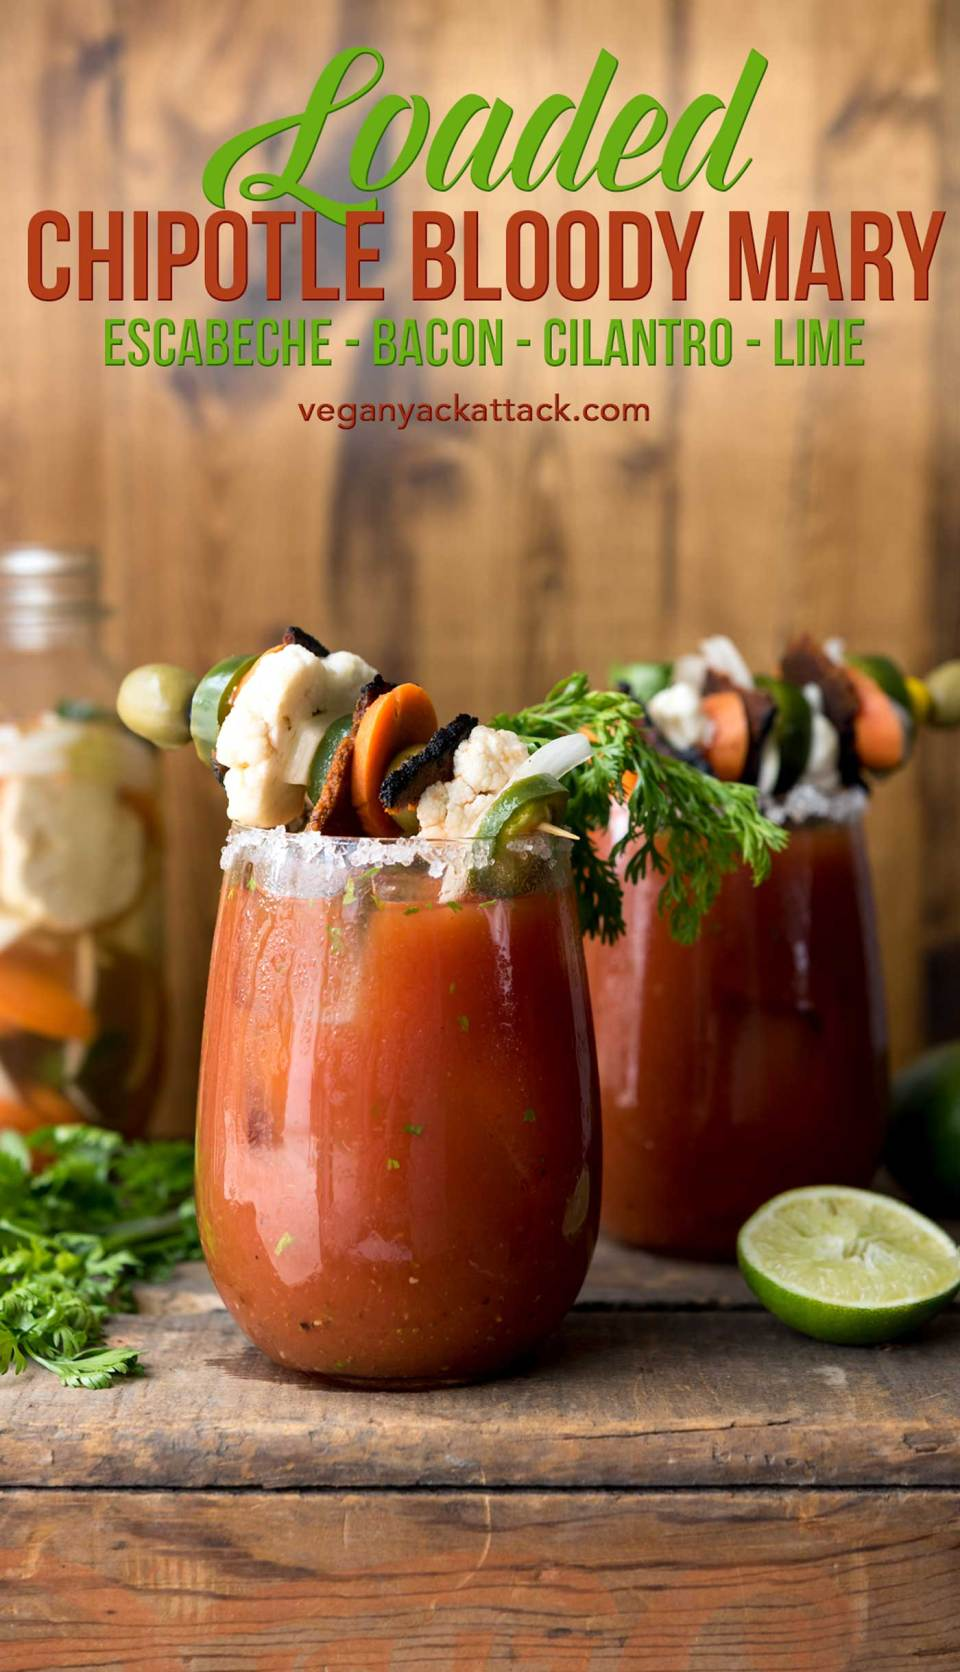 Loaded Chipotle Bloody Mary! Full of flavor from fresh cilantro, lime, homemade escabeche and #vegan bacon. #fathersday #craftyourcocktail